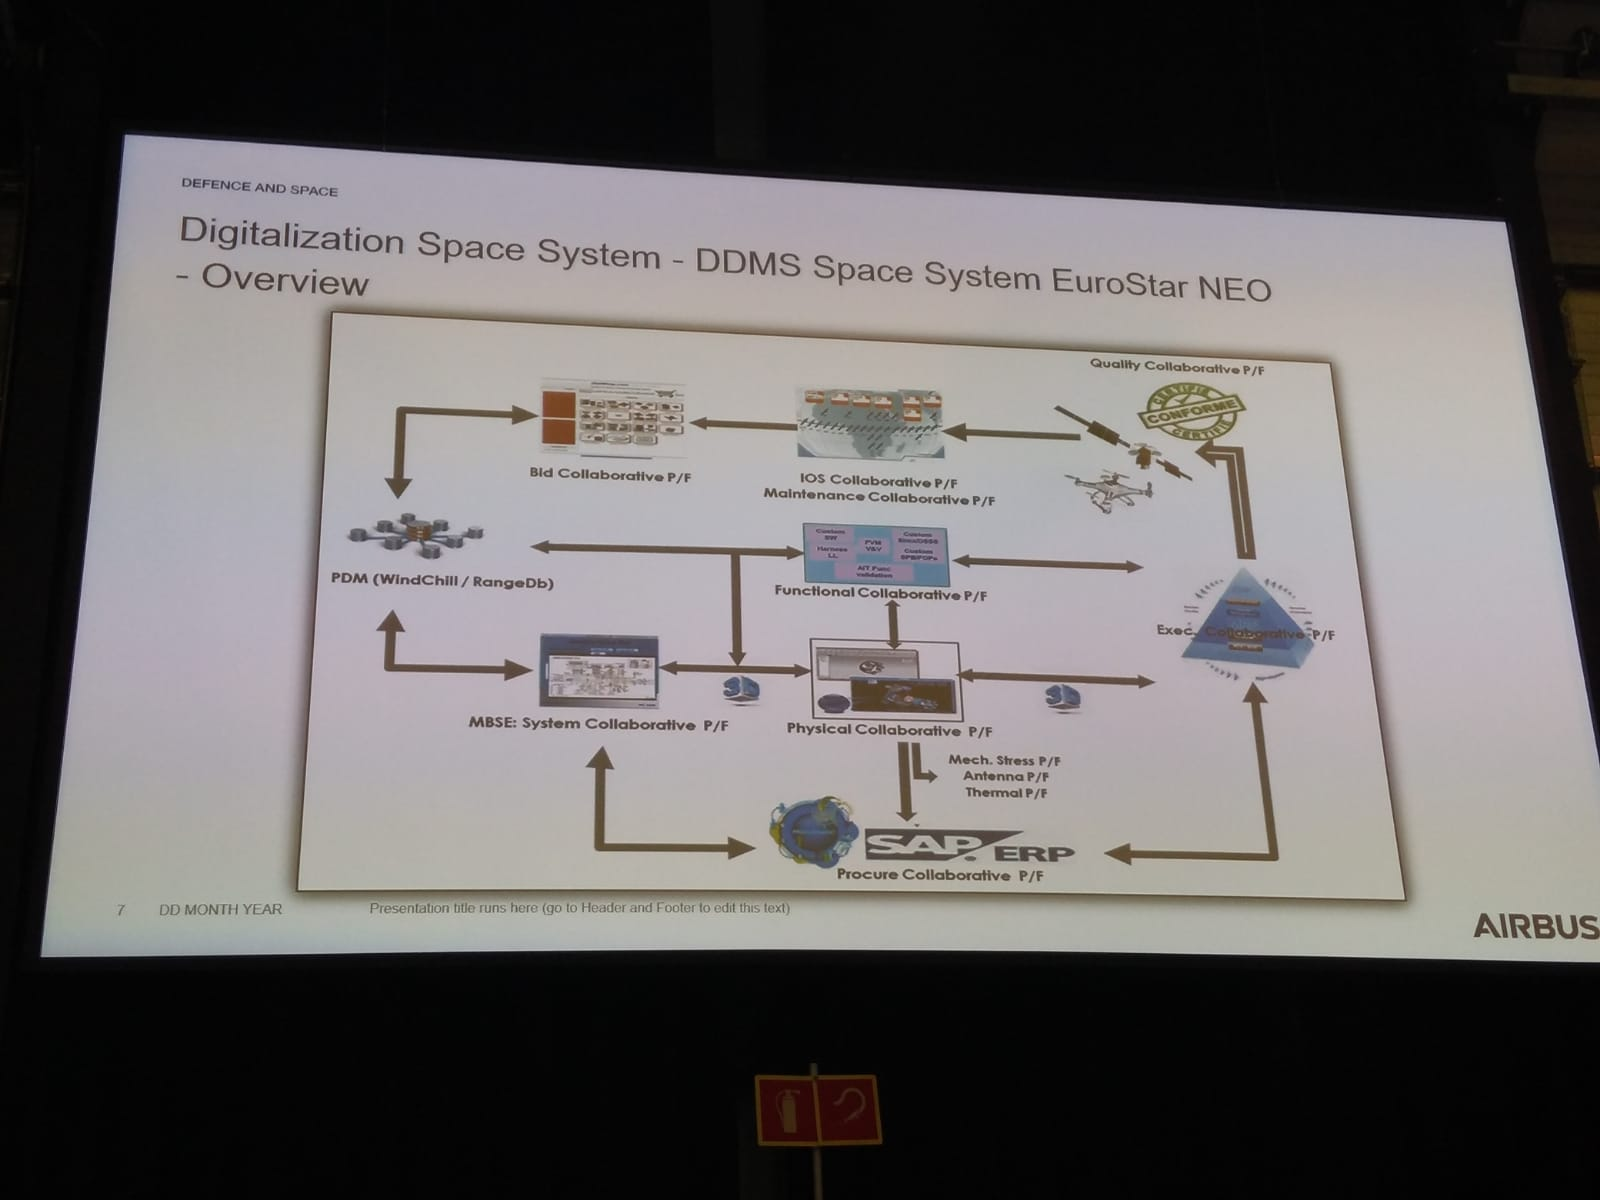 The digitized space system